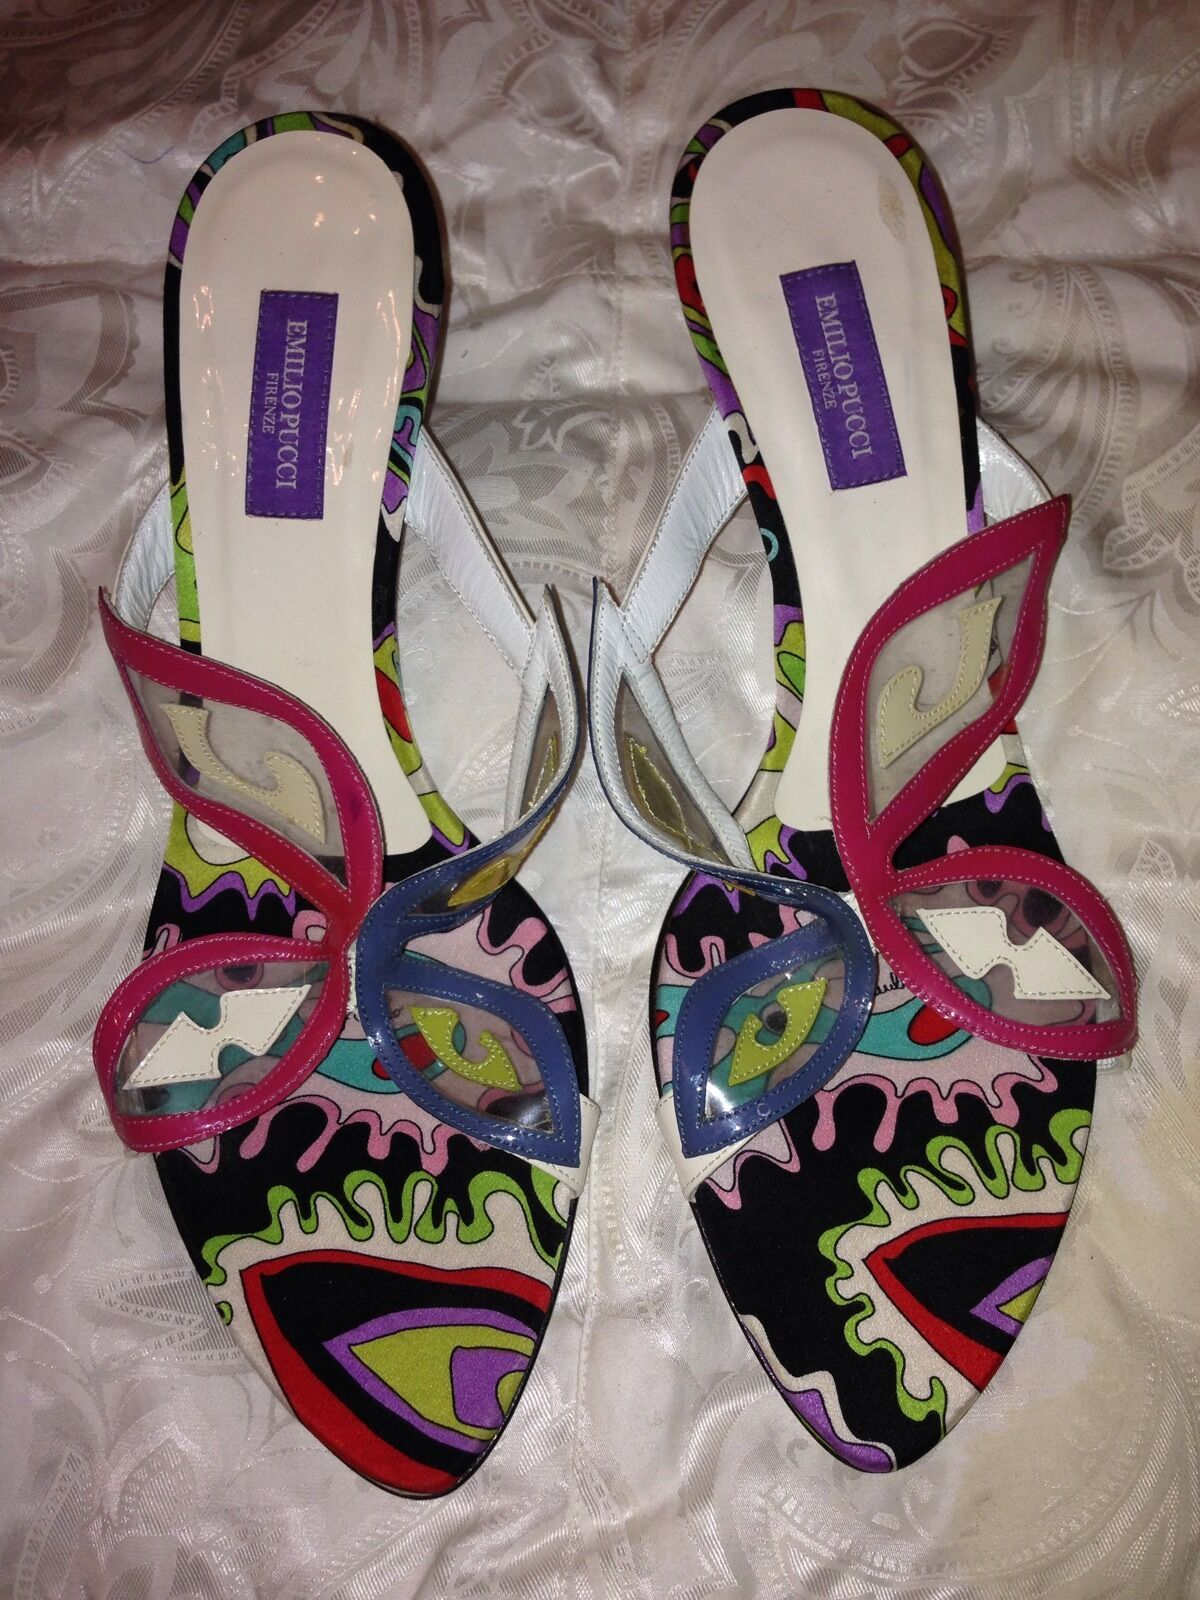 **NEW** EMILIO PUCCI PUCCI PUCCI Butterfly sandals mules slides size 38 8 b2c26b